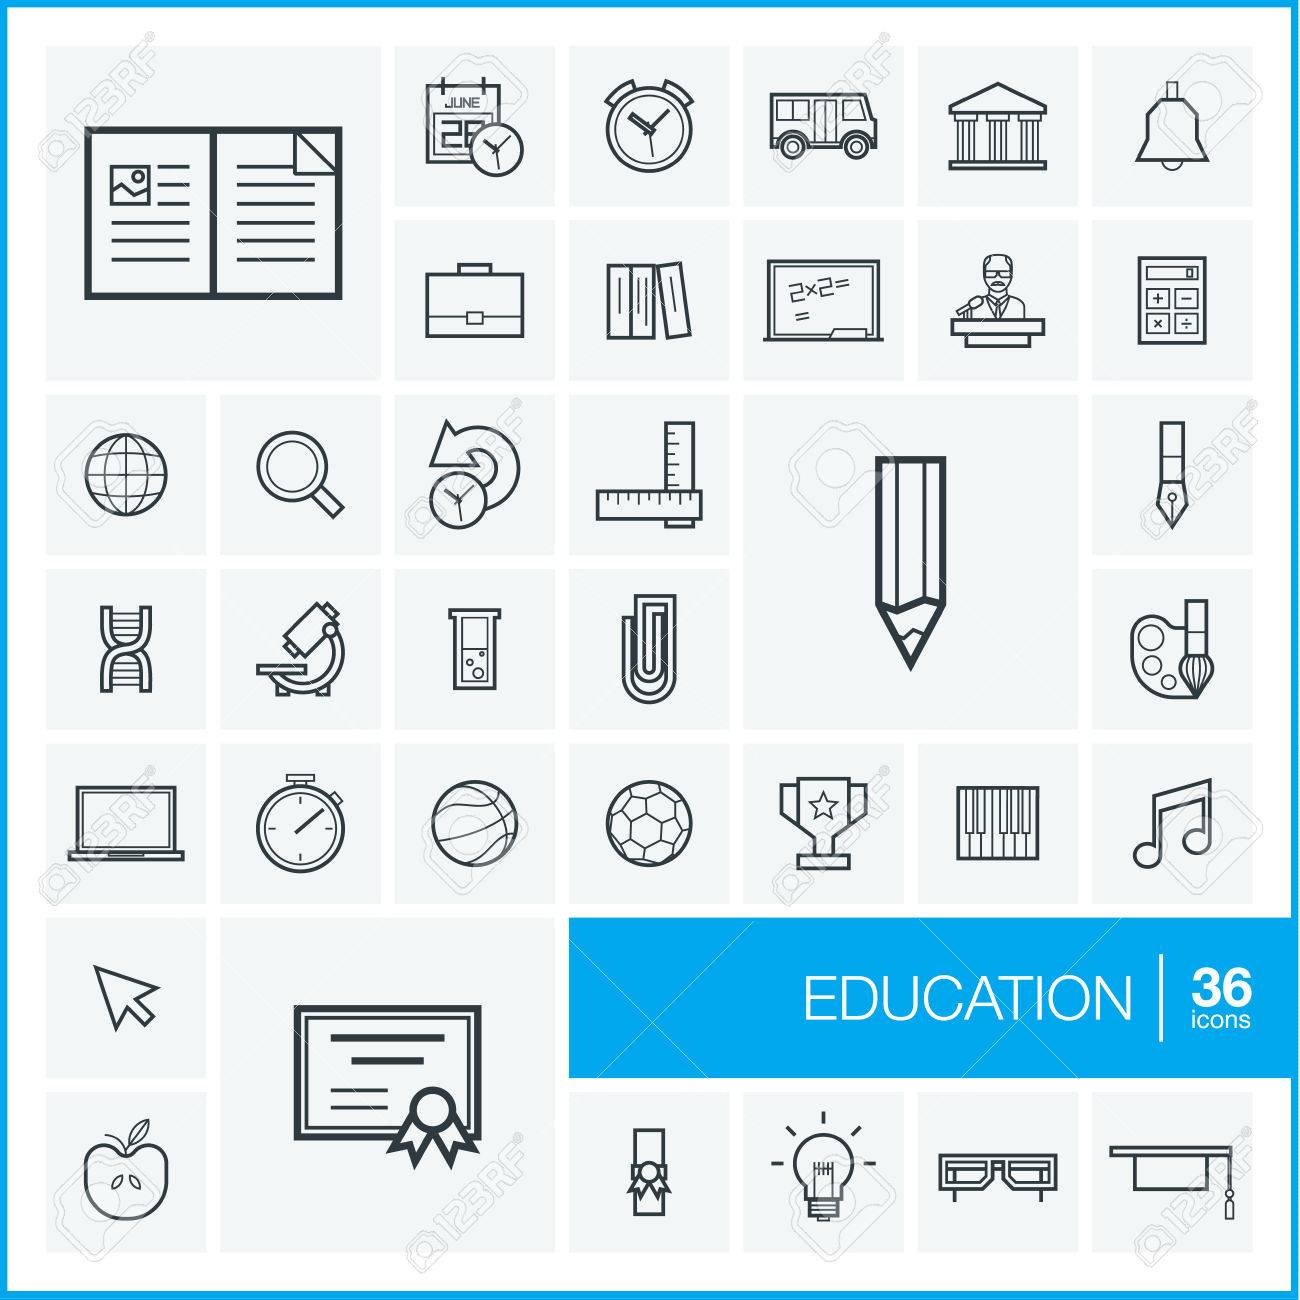 Vector thin line icons set and graphic design elements. Illustration with education, online learning, think outline symbols. Book, microscope, calculator, pen, elearning, teacher linear pictogram - 51018181